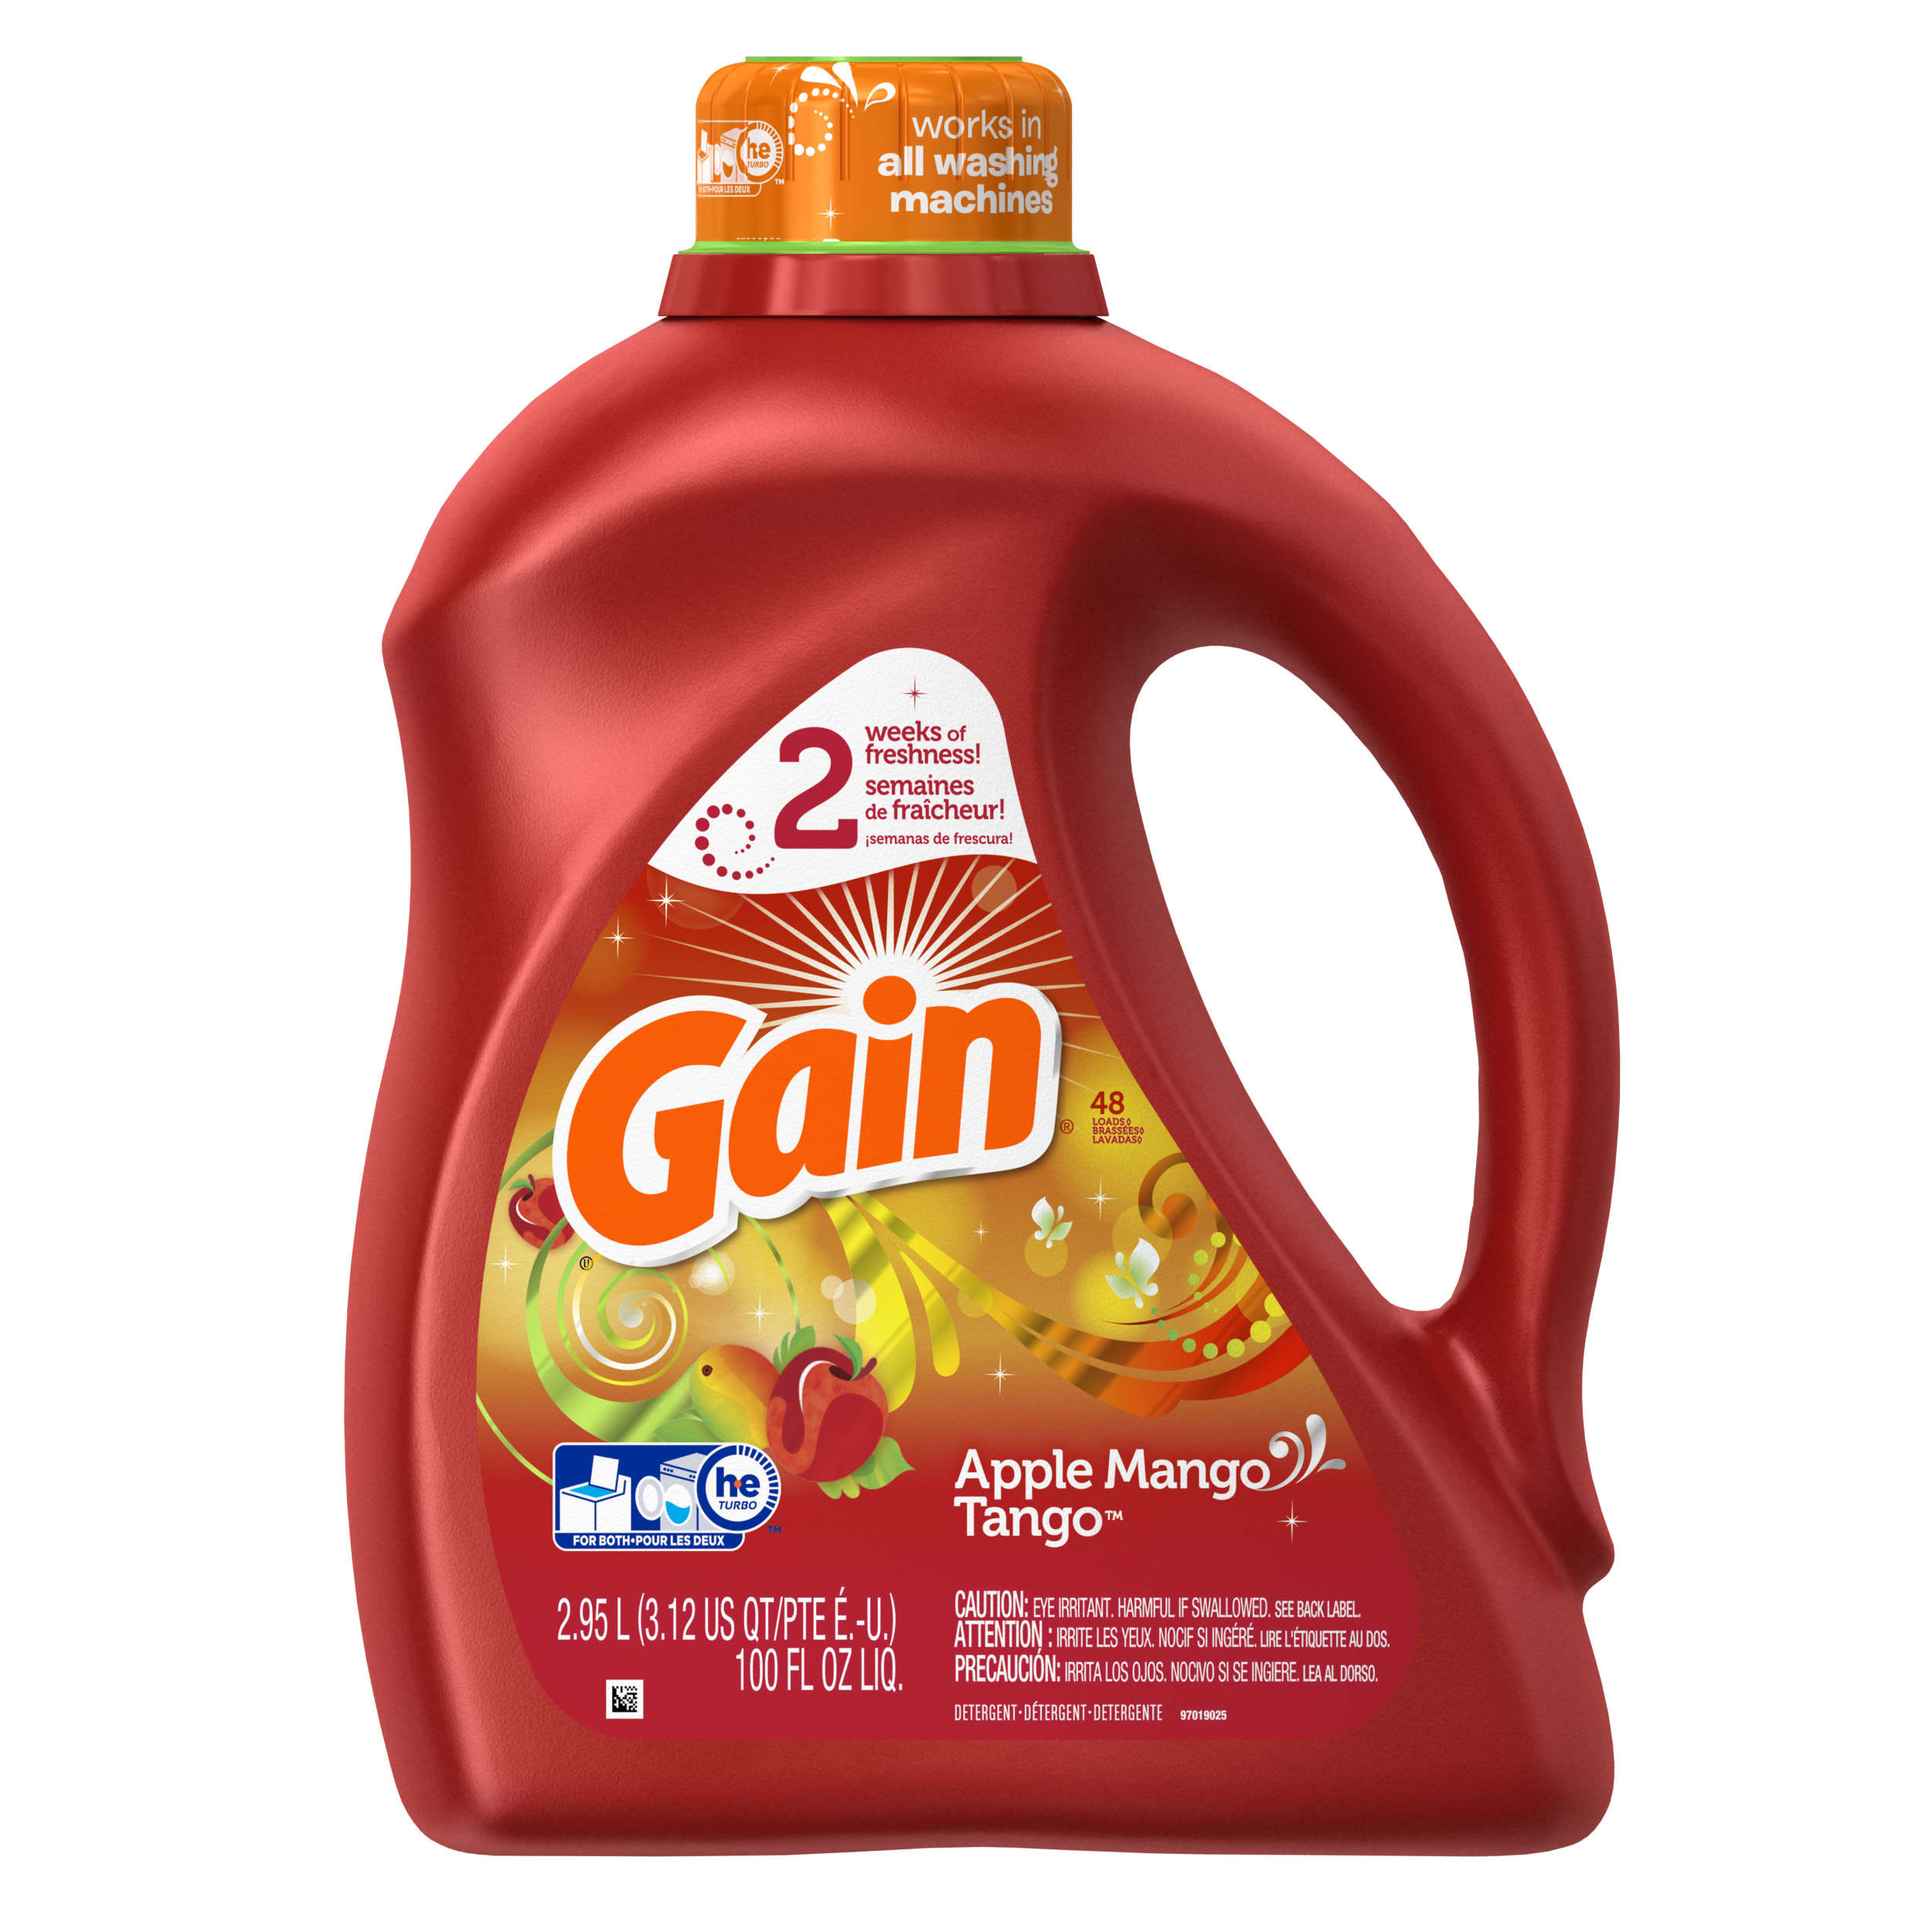 Gain Liquid Laundry Detergent, Apple Mango Tango Scent, 48 loads, 100 oz